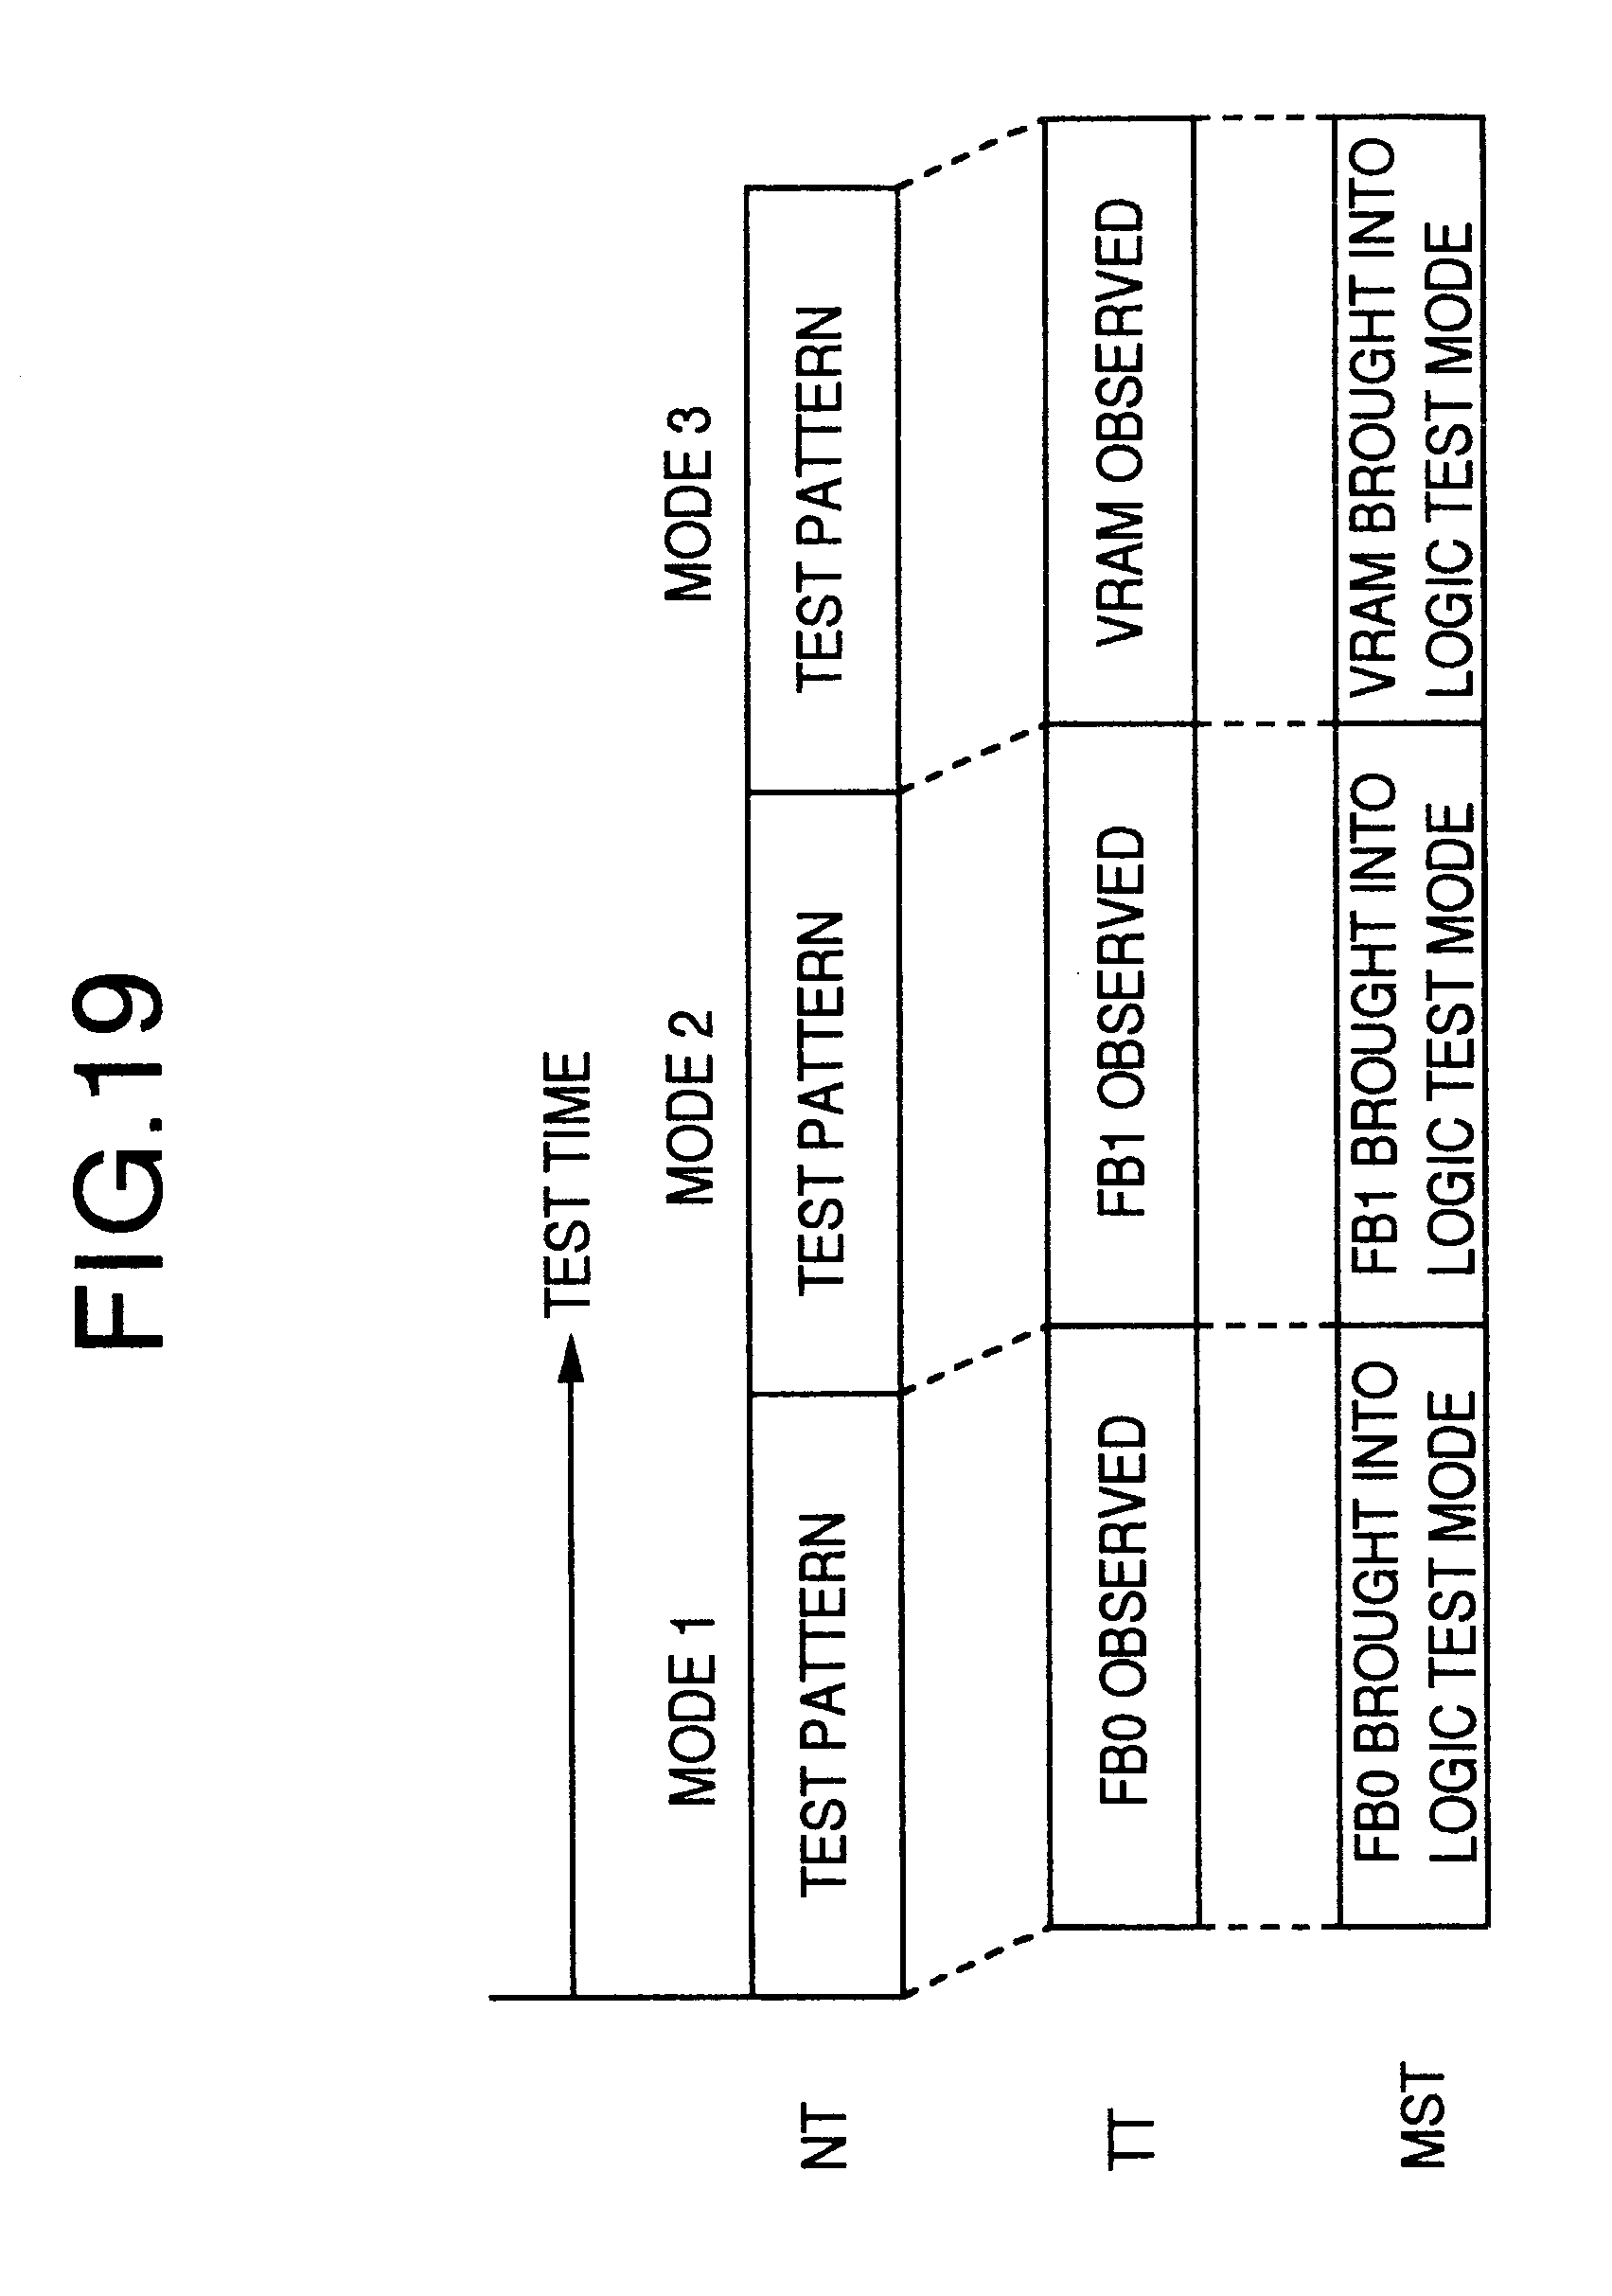 data processor with built-in dram